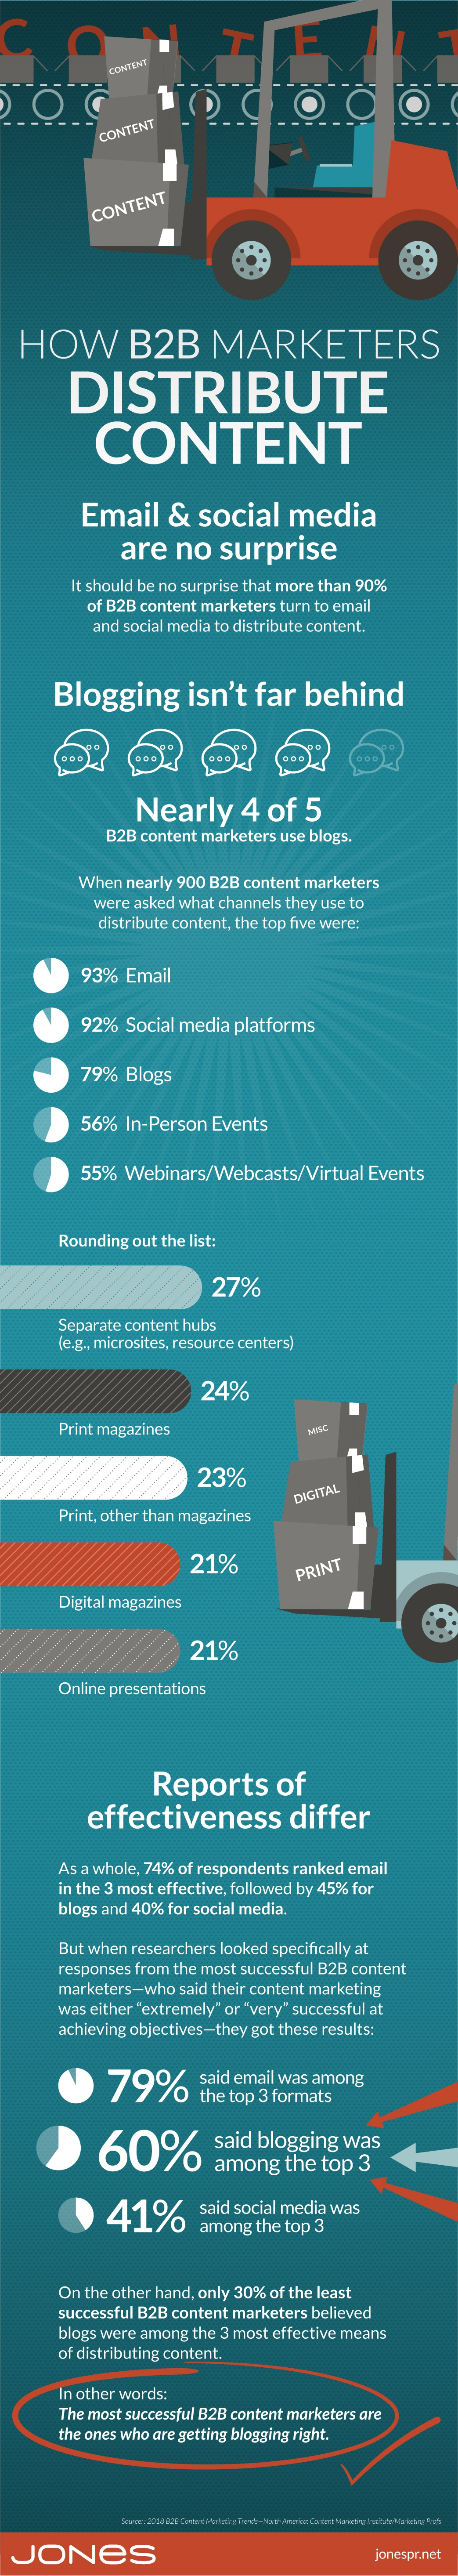 jones-infographic-b2b-content-distribution